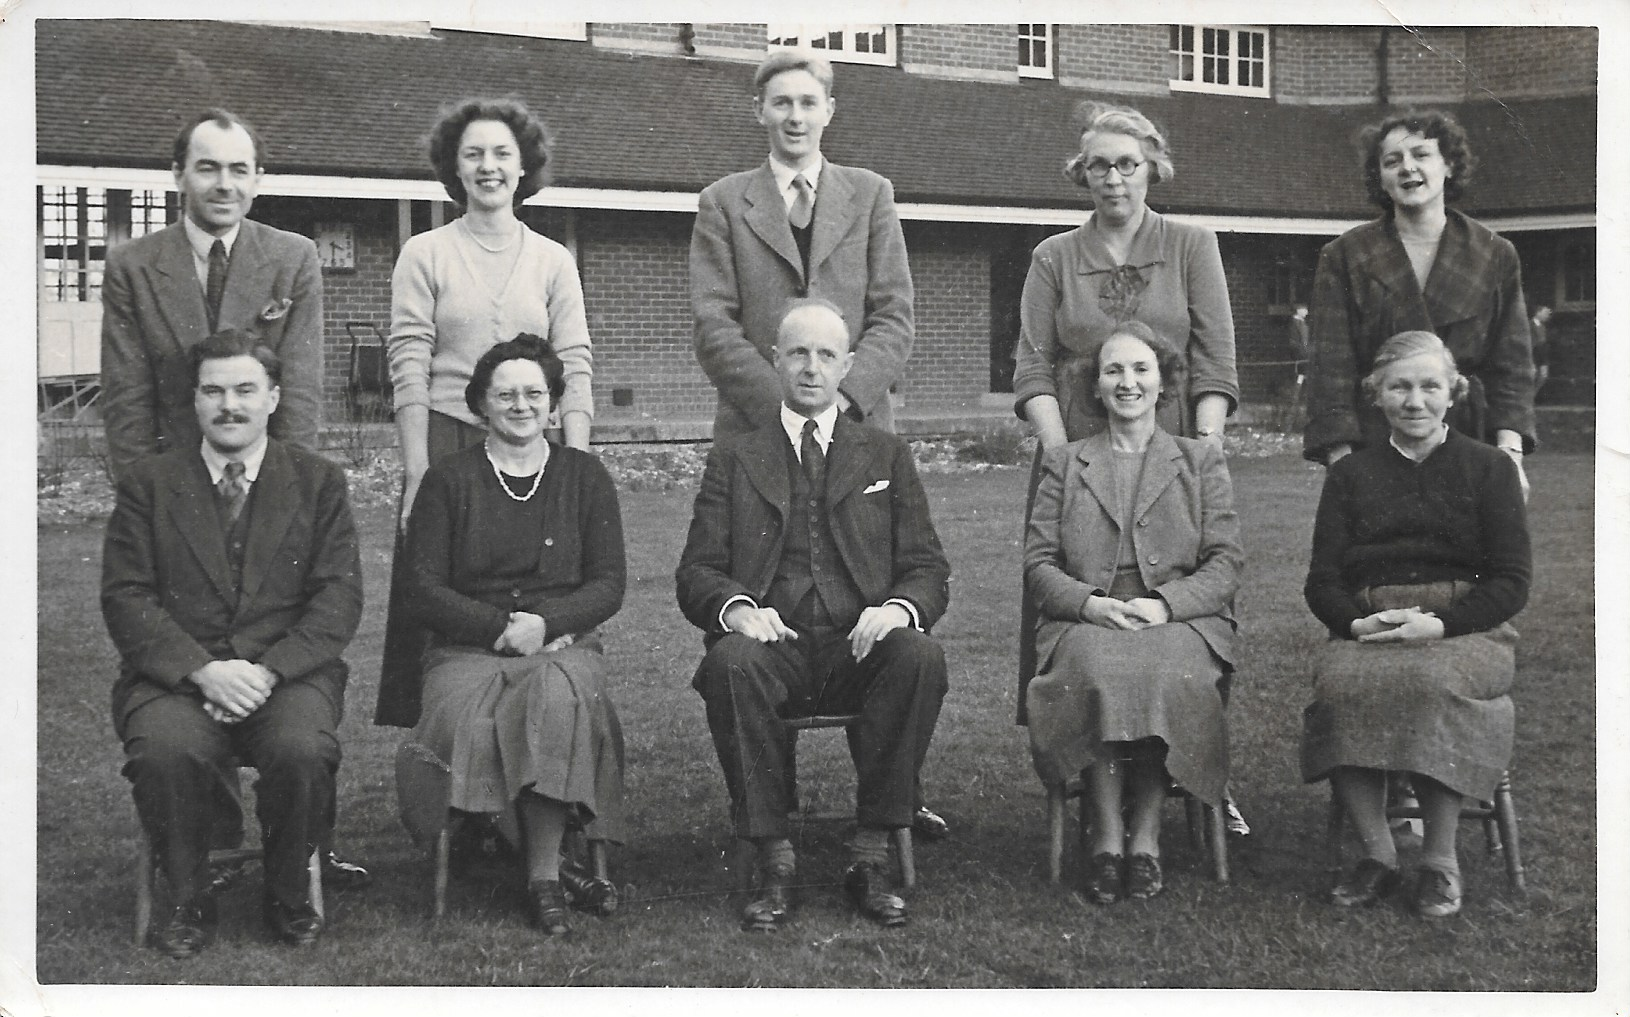 Mr King in the centre with Miss Glover second from the right in the back row.